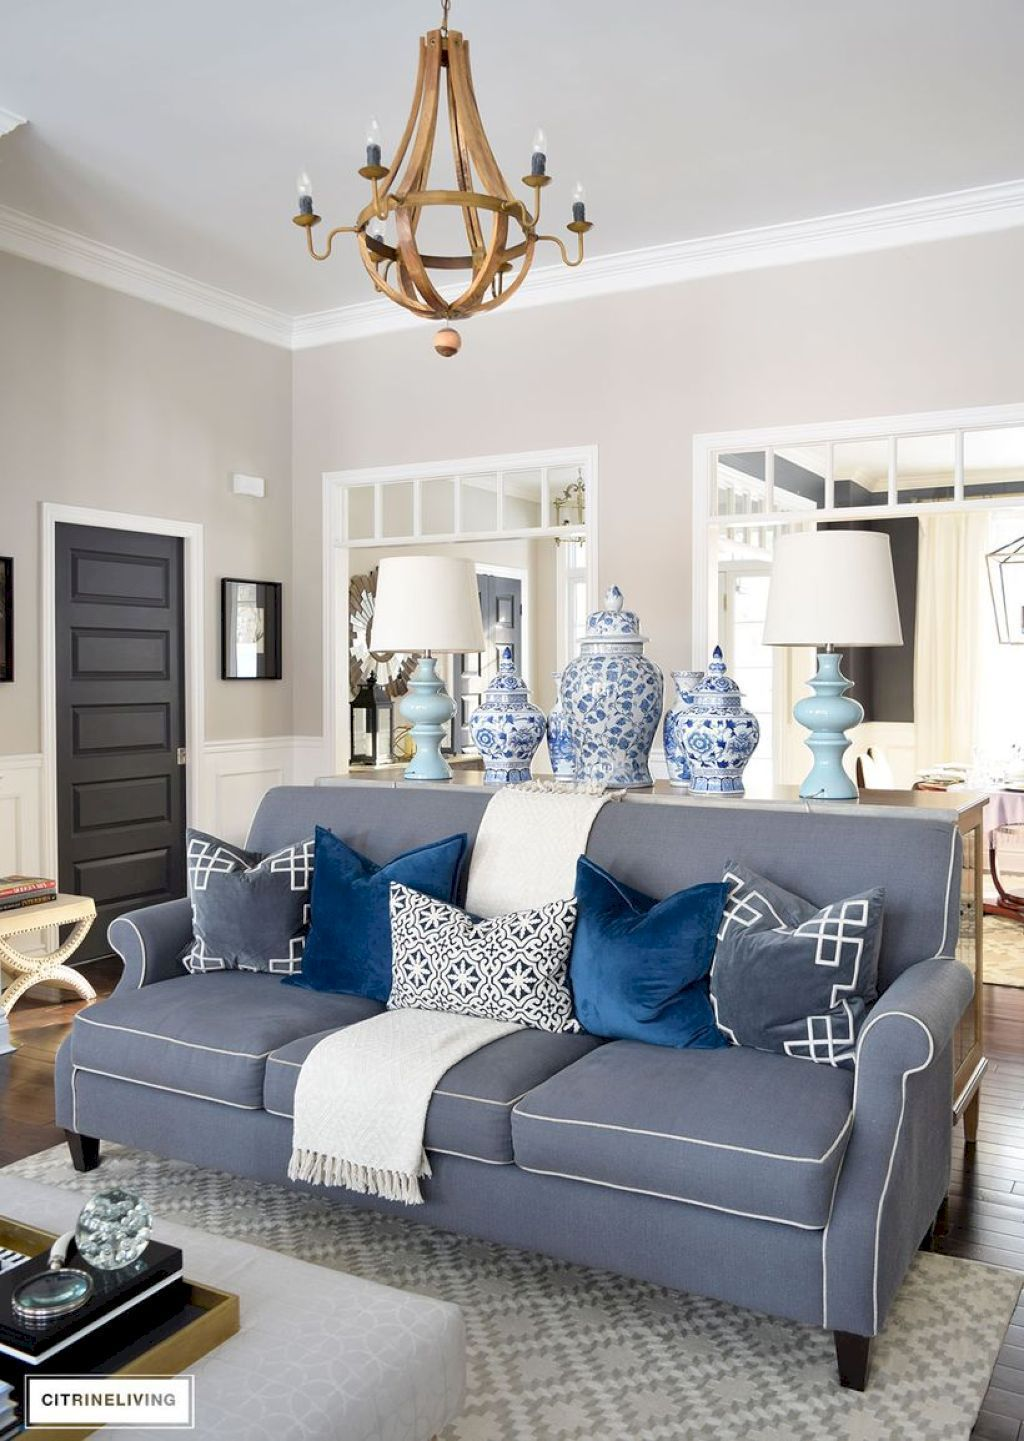 Cool modern coastal living room decor ideas https bellezaroom also rh pinterest